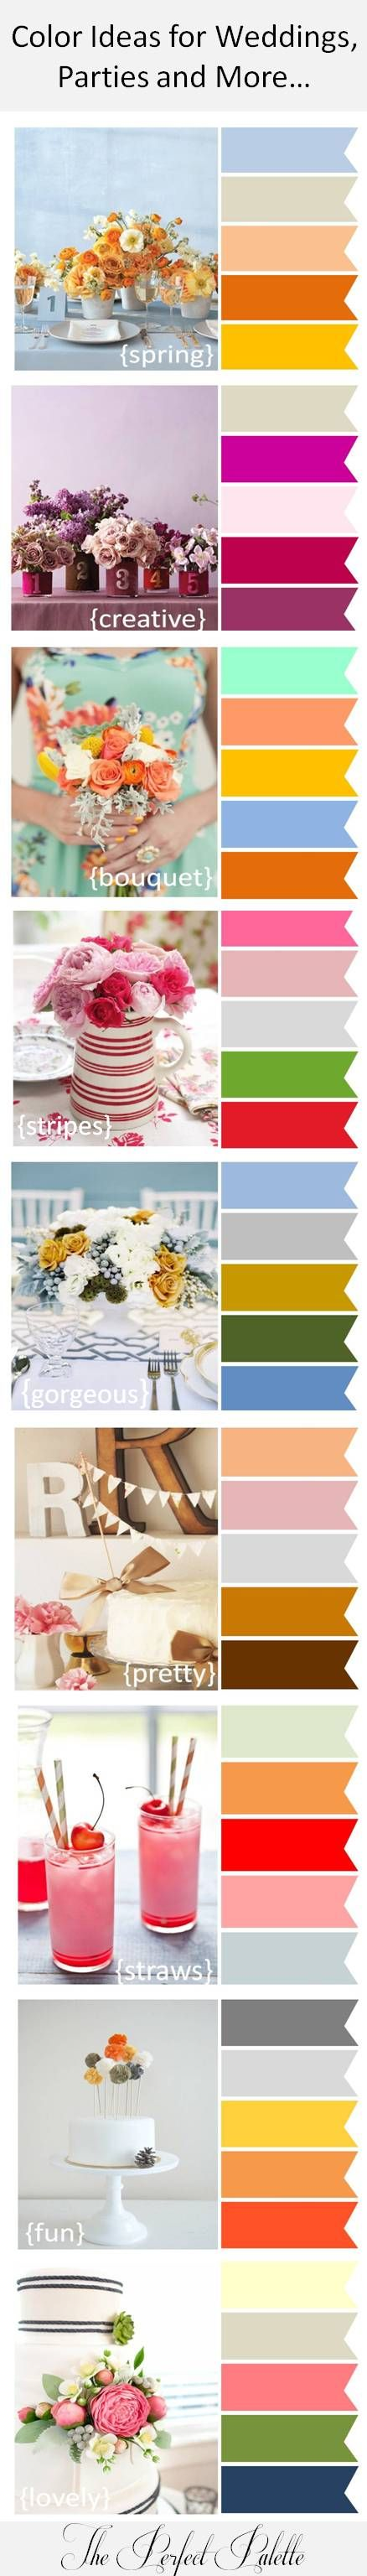 Color Ideas for Weddings, Parties and More... http://www.theperfectpalette.com/2012/09/color-ideas-for-weddings-parties-and.html?utm_source=feedburner_medium=feed_campaign=Feed%3A+ThePerfectPalette+%28The+Perfect+Palette%29#